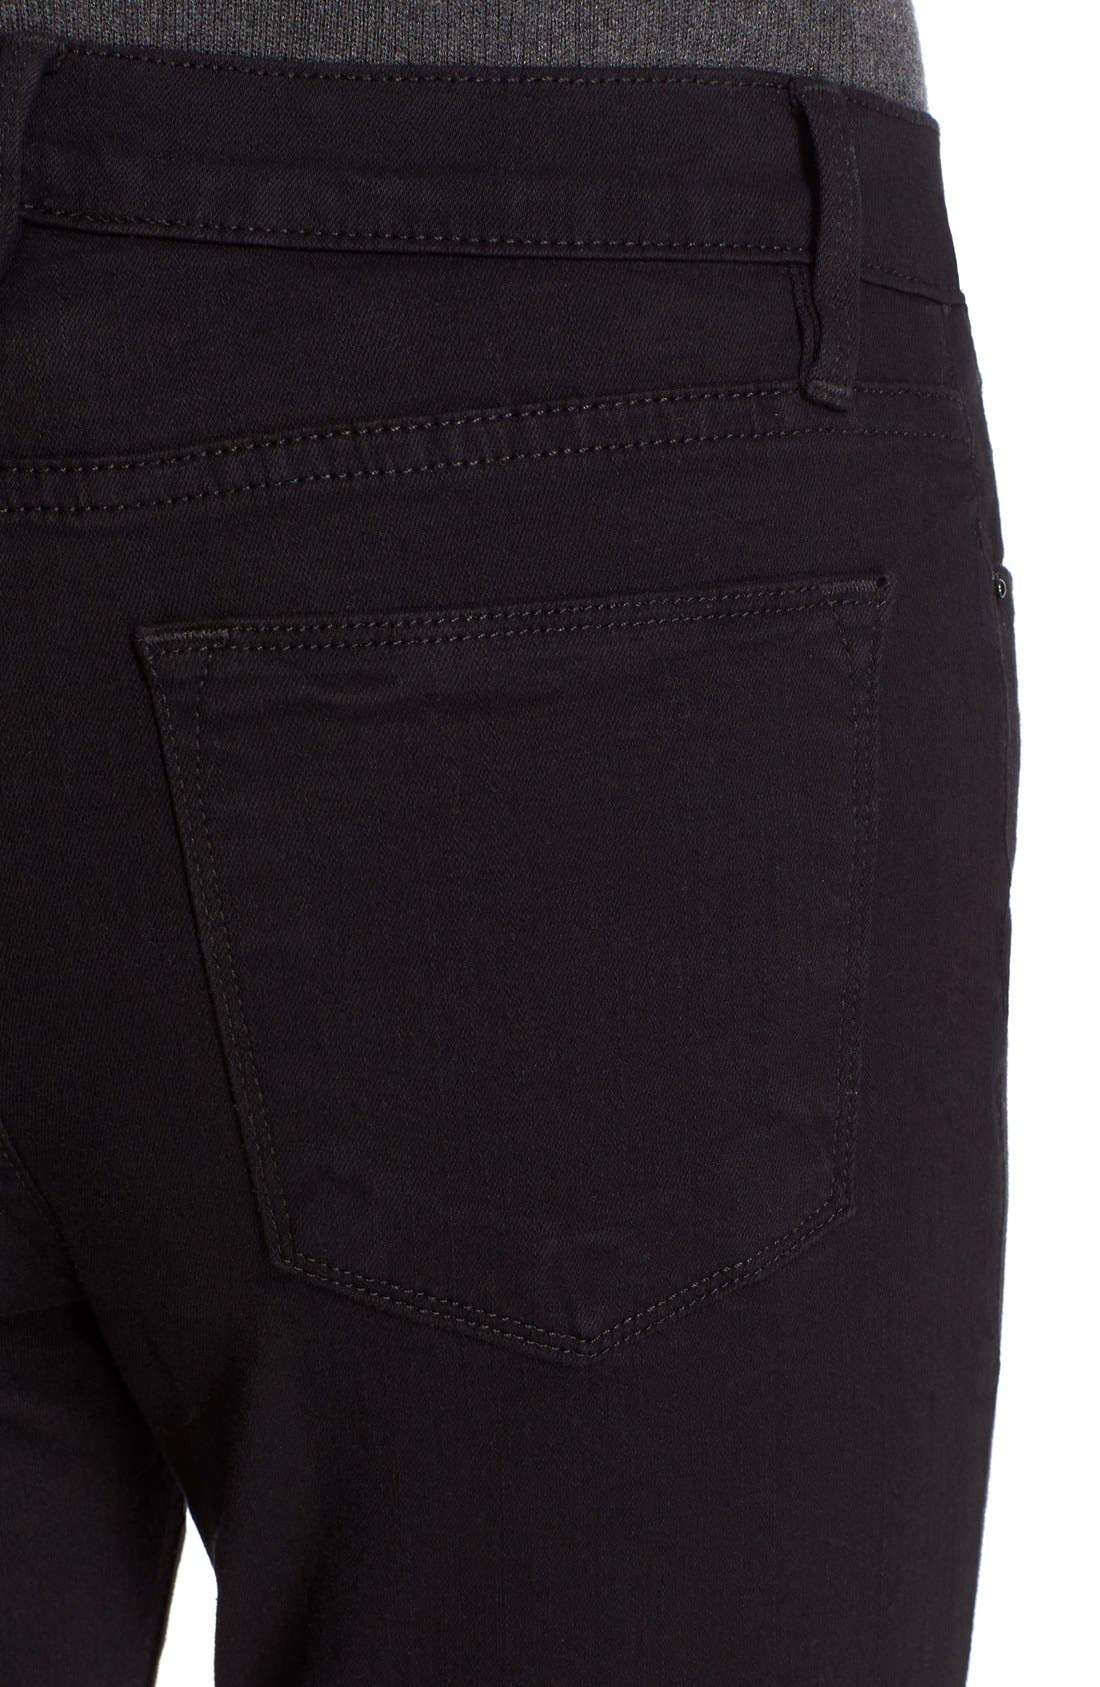 FRAME, Le High Straight High Waist Staggered Hem Jeans, Alternate thumbnail 4, color, FILM NOIR